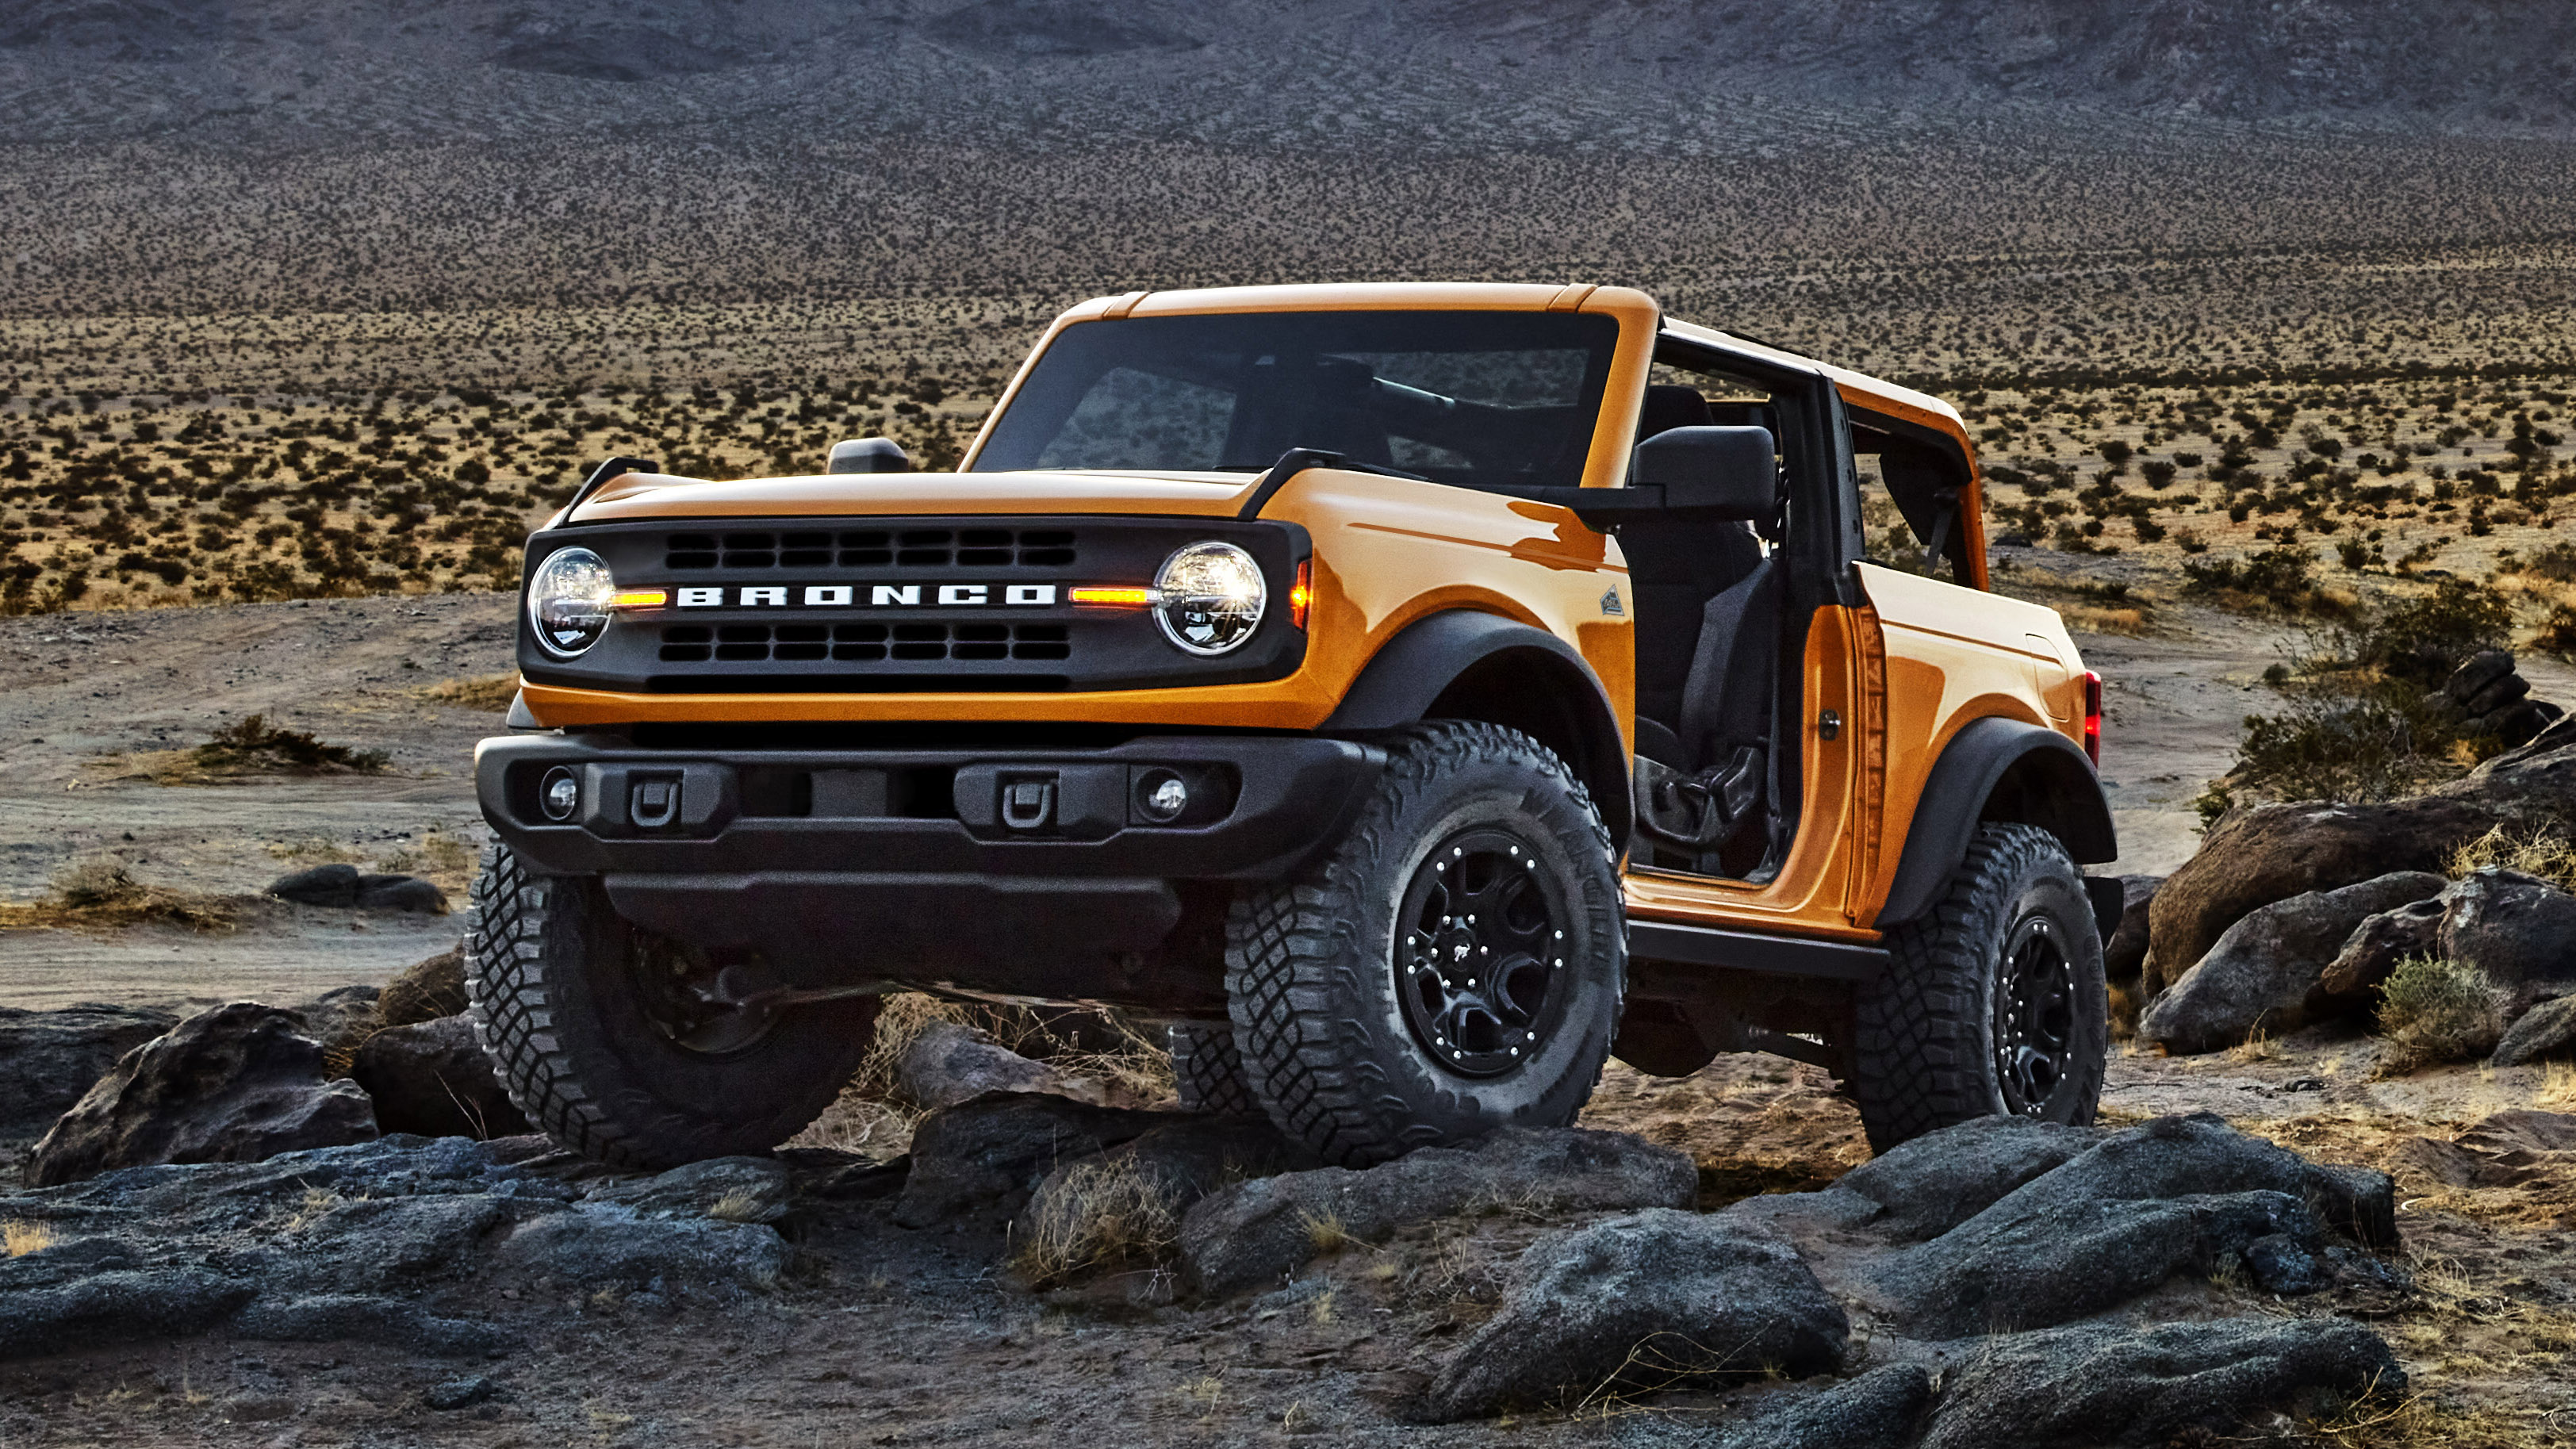 2021 Ford Bronco 2-Door - Image Credit: Ford